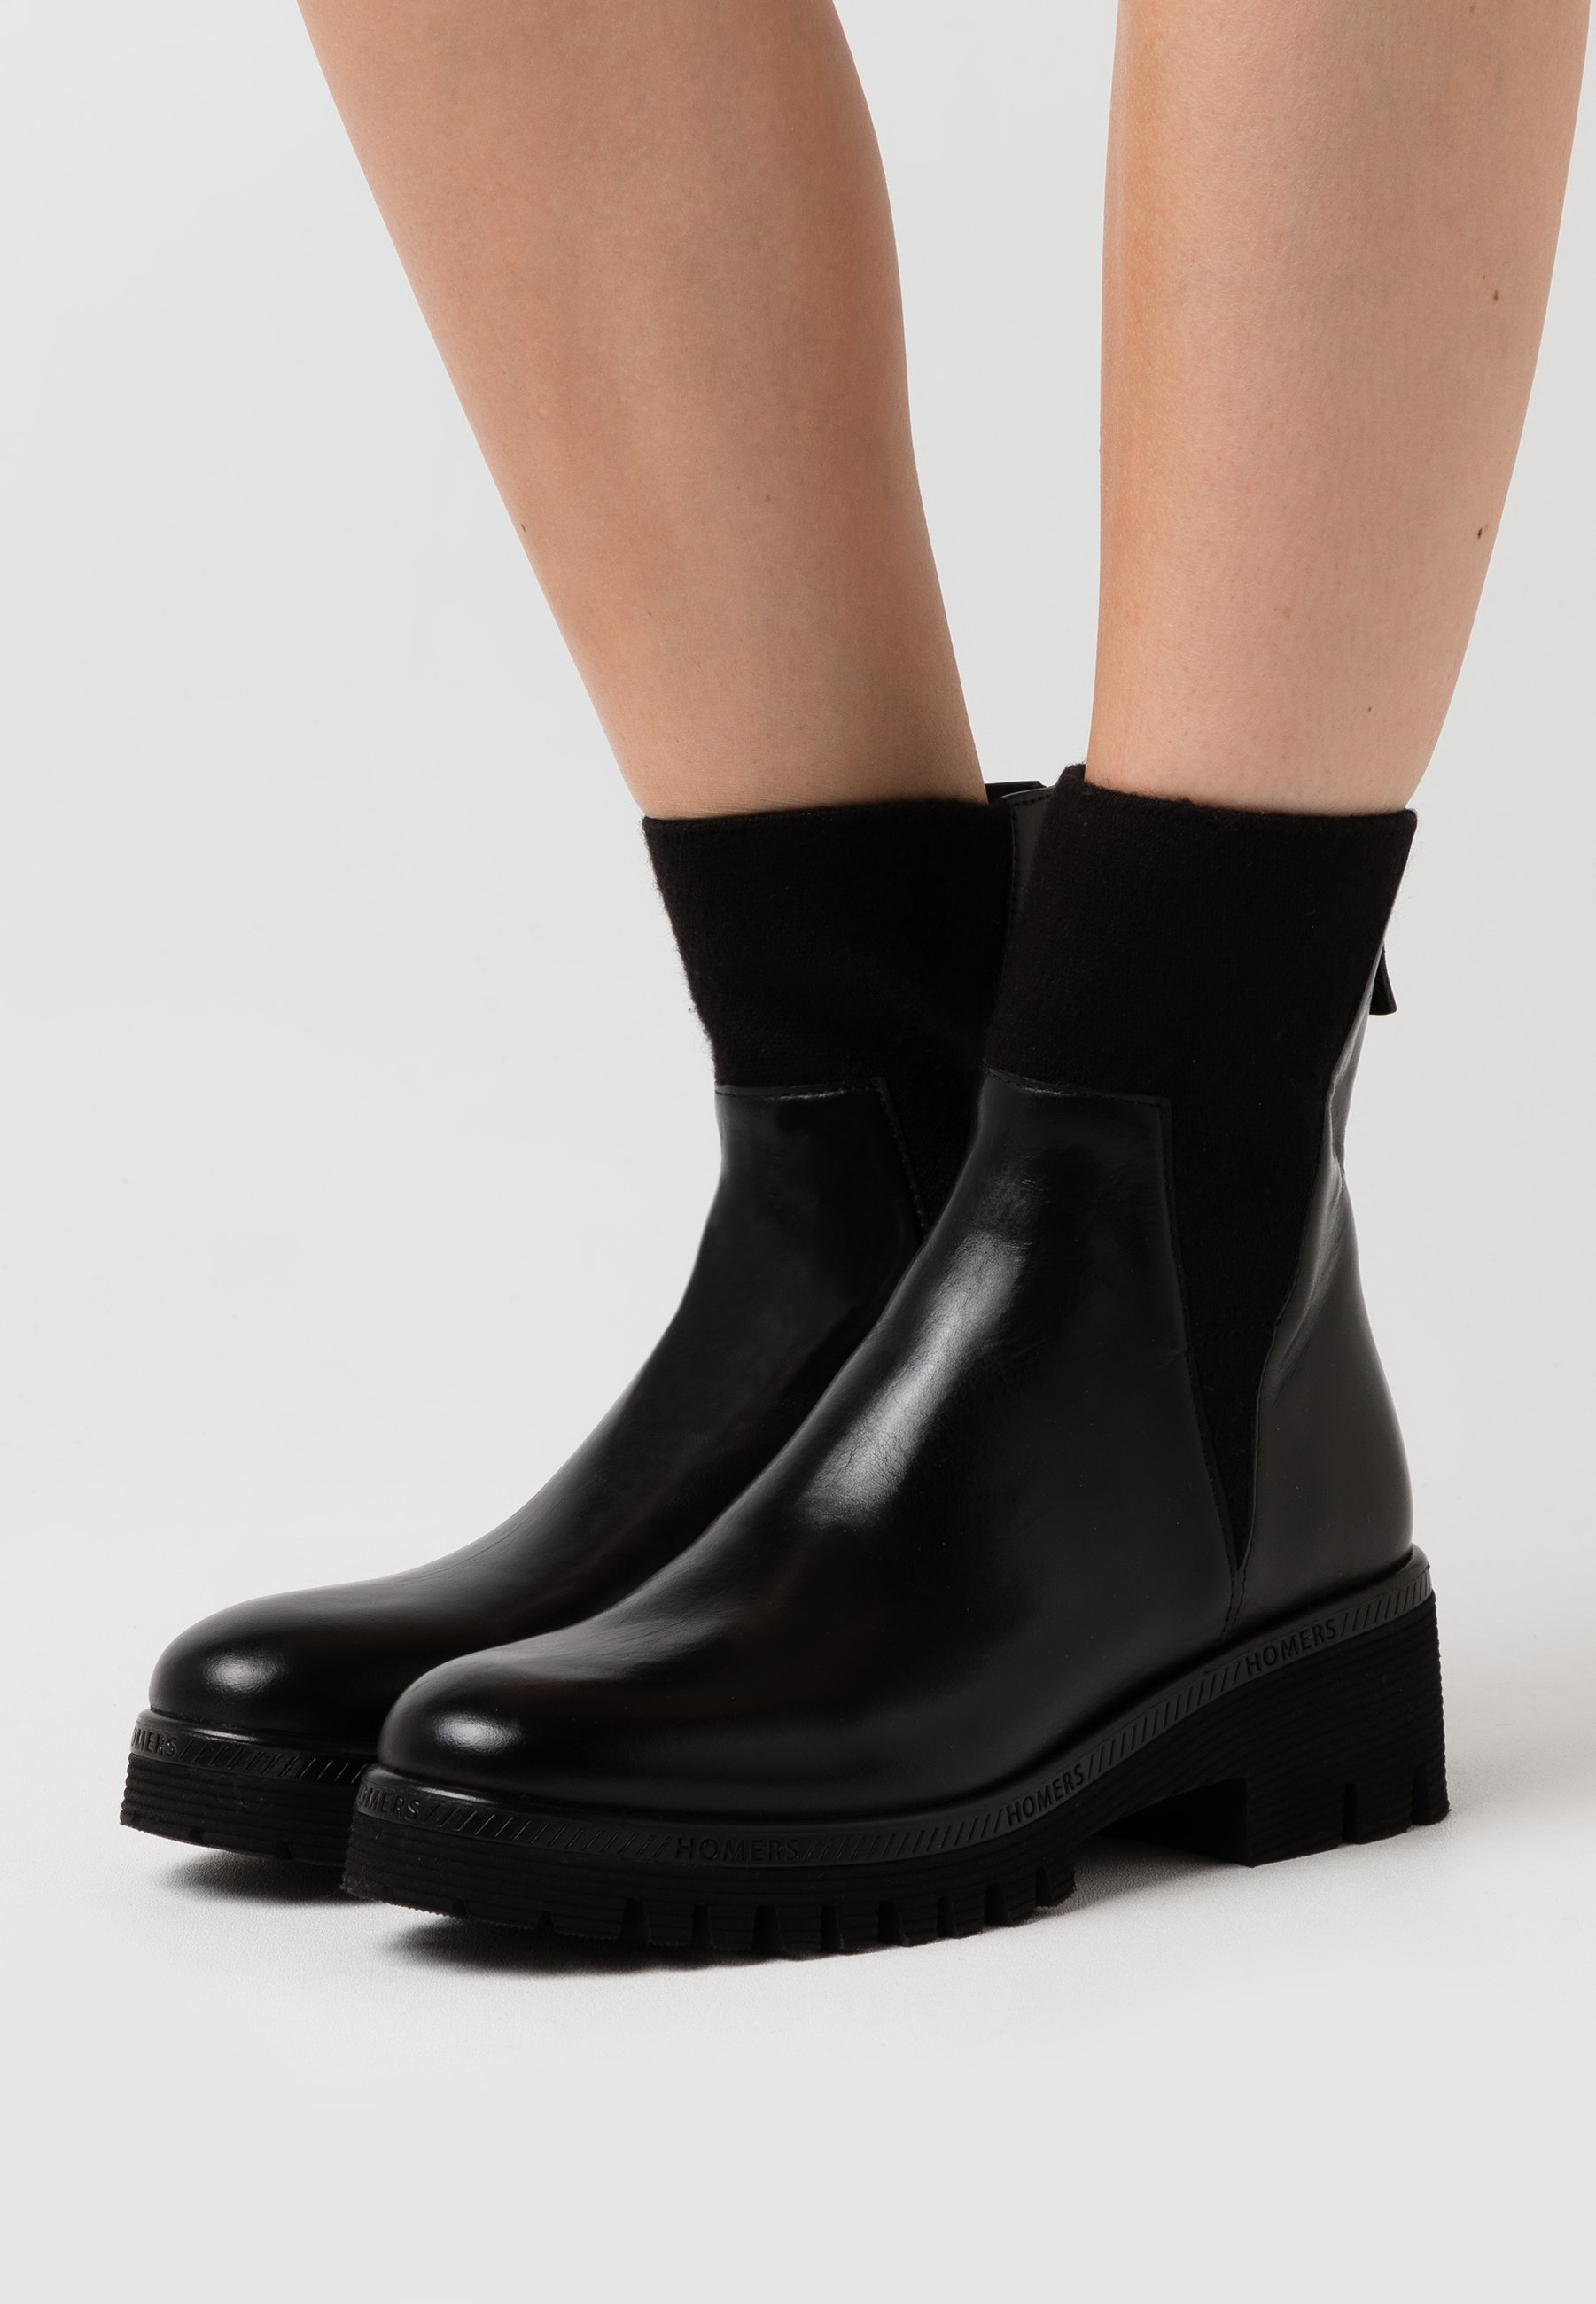 Cheapest Cheapest Homers KELLY - Platform ankle boots - black | women's shoes 2020 R2MjA